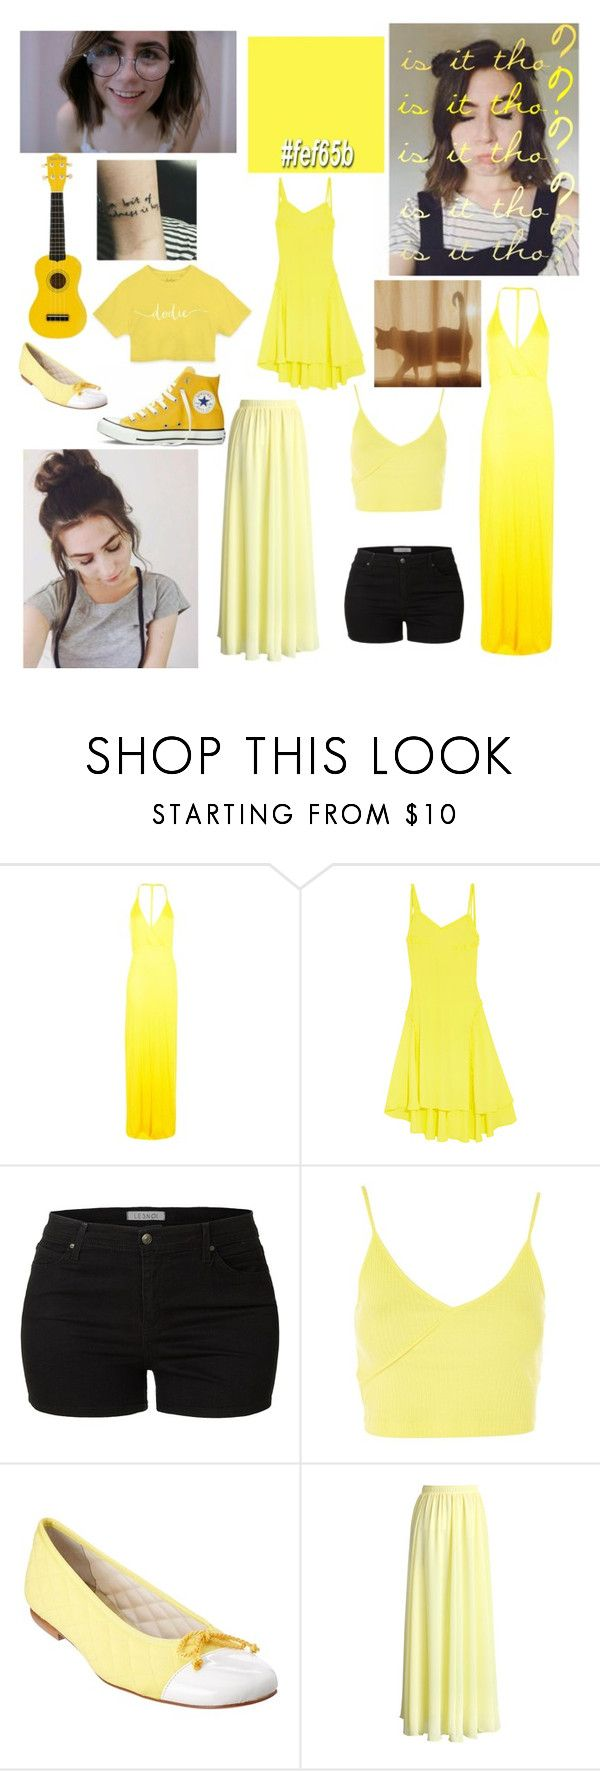 """""""is it tho?"""" by that-girl-under-the-stairs ❤ liked on Polyvore featuring Sirius, Boohoo, Cédric Charlier, LE3NO, Topshop, French Sole FS/NY and Chicwish"""